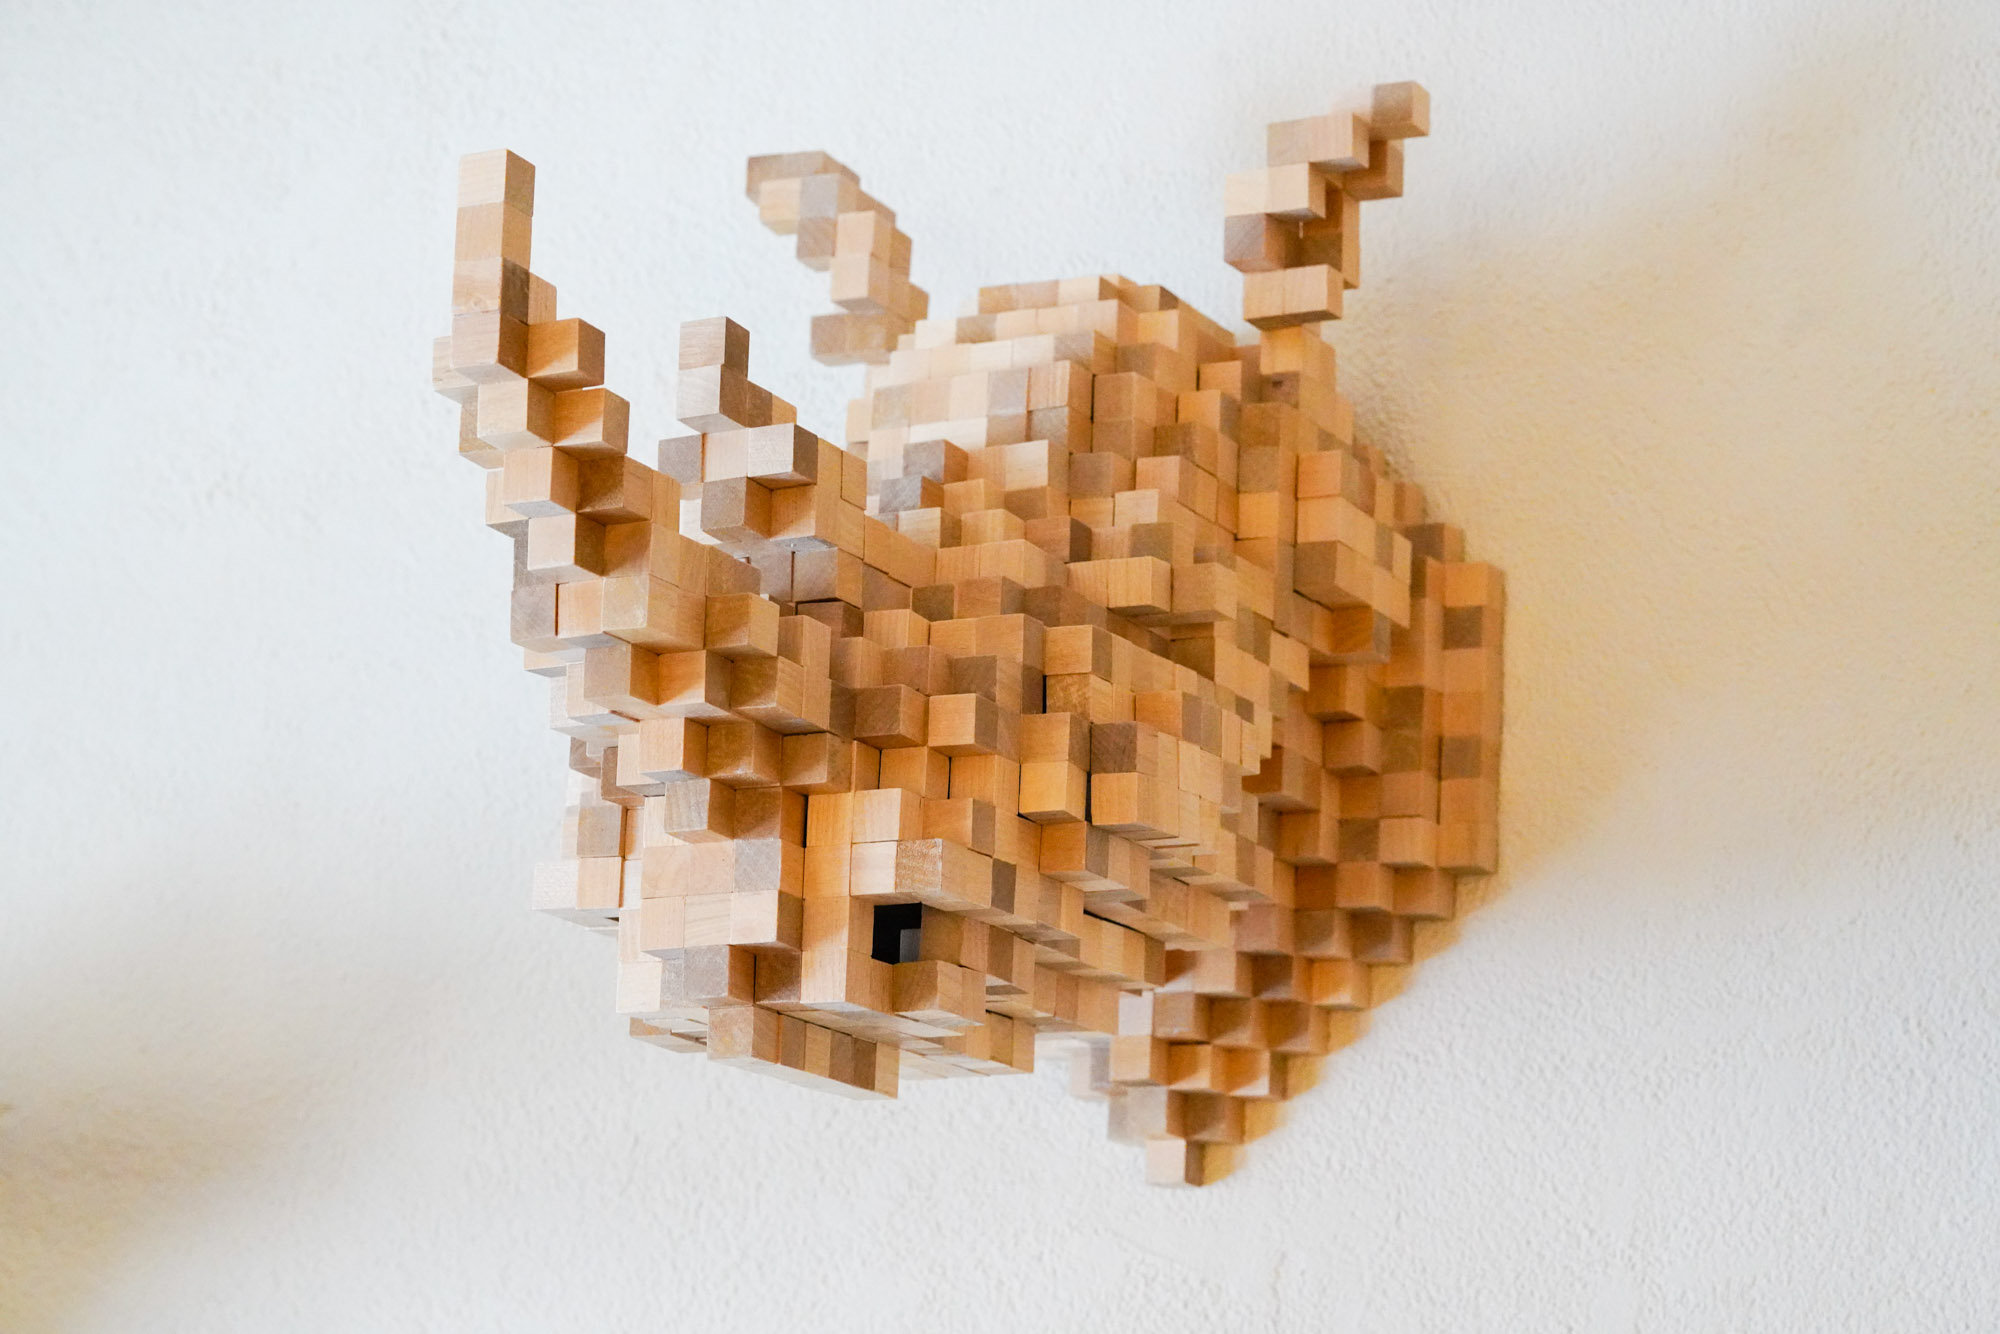 Pixelated Animal Head Structures for Home Decor